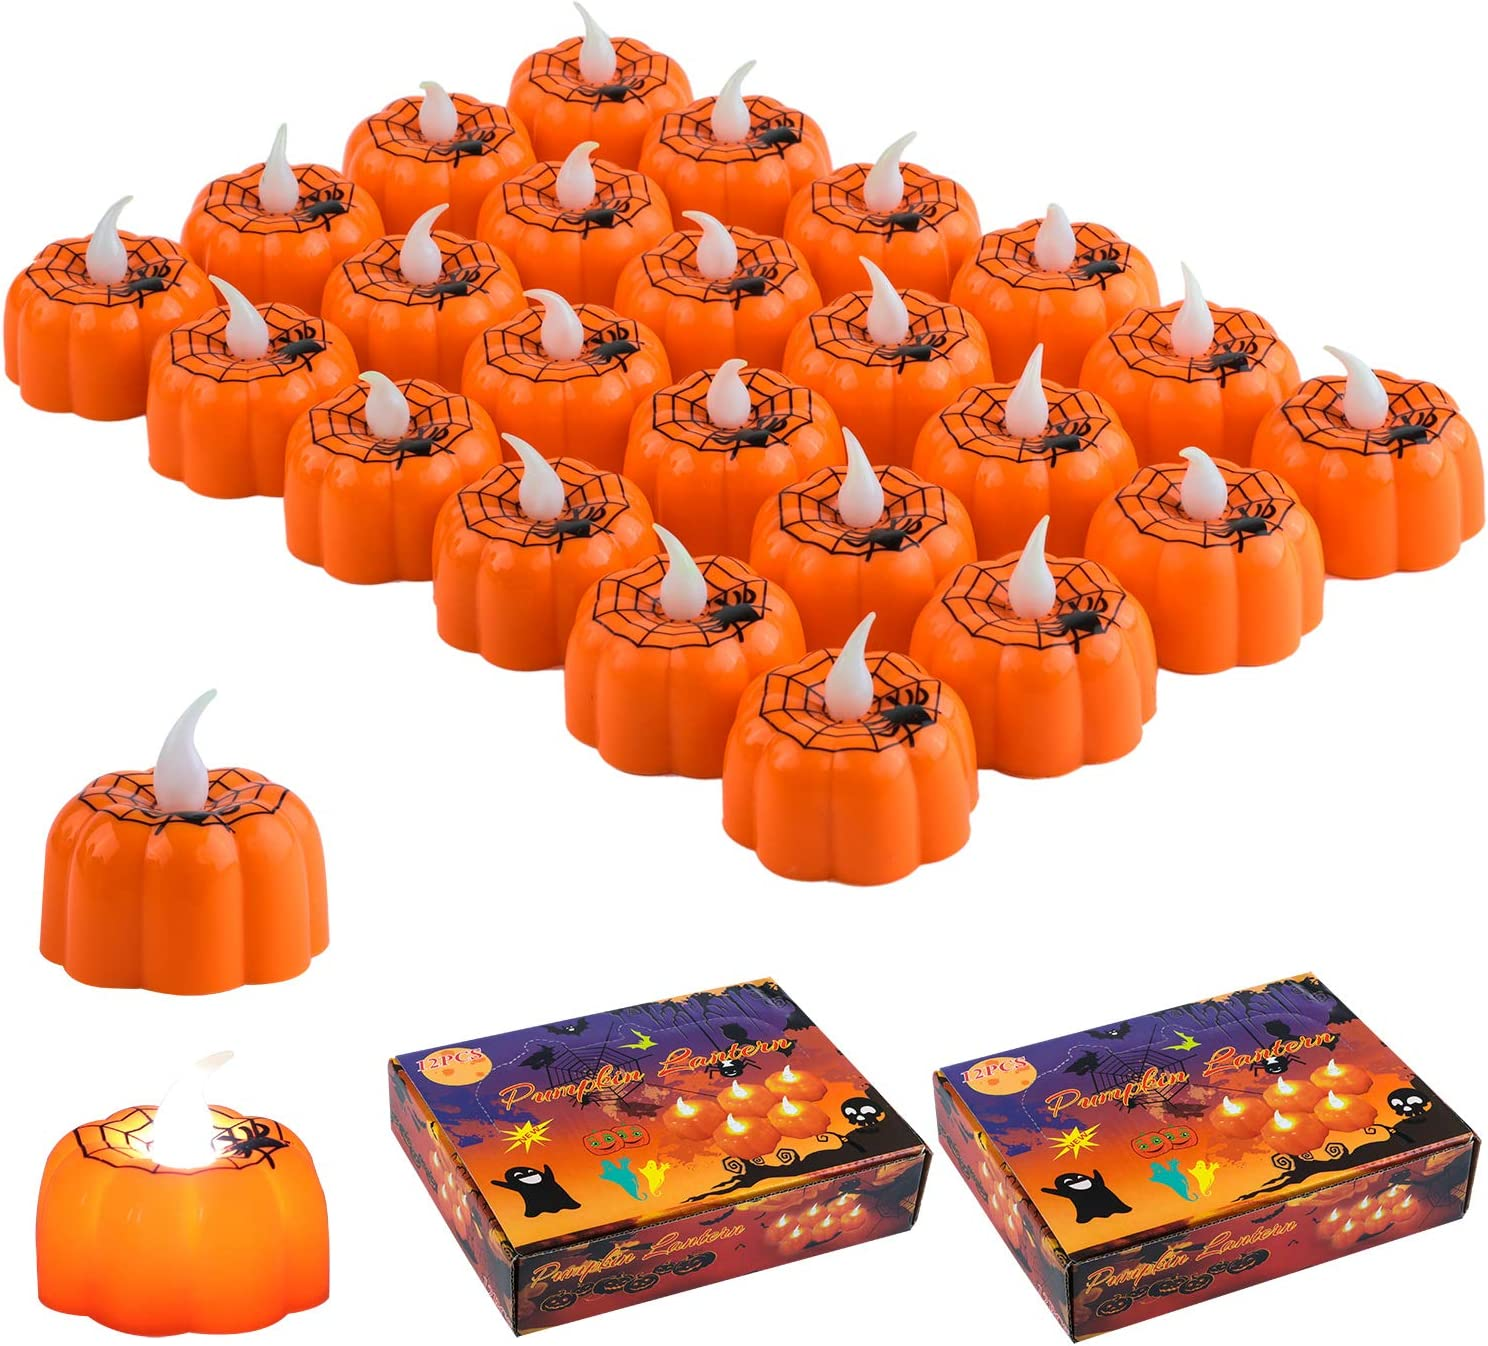 Aneco 24 Pieces Spider Tealights Candles Halloween Flameless Candles Halloween 3D Orange Lanterns Candle Decor for Halloween Decorations